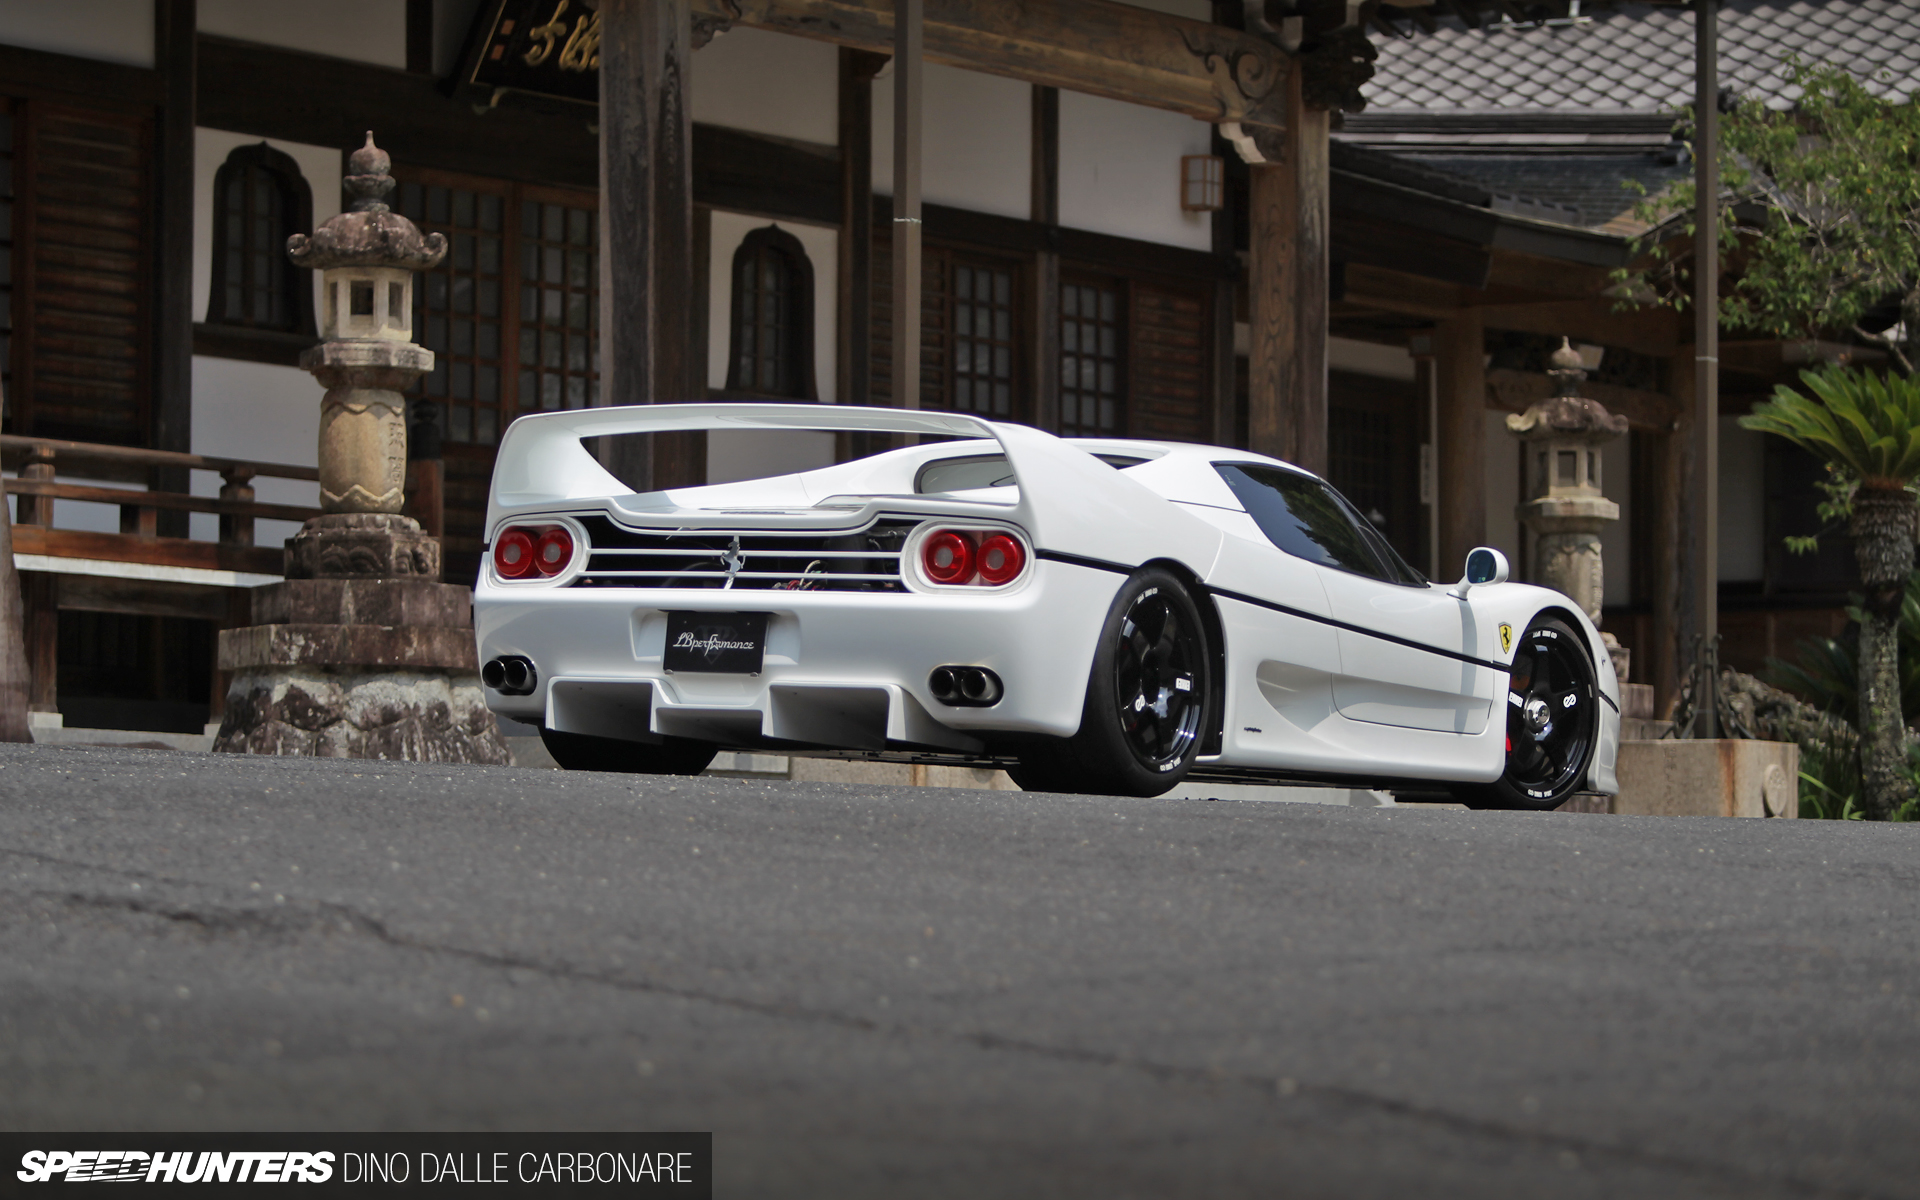 The Other Legend Liberty Walk F50 Speedhunters